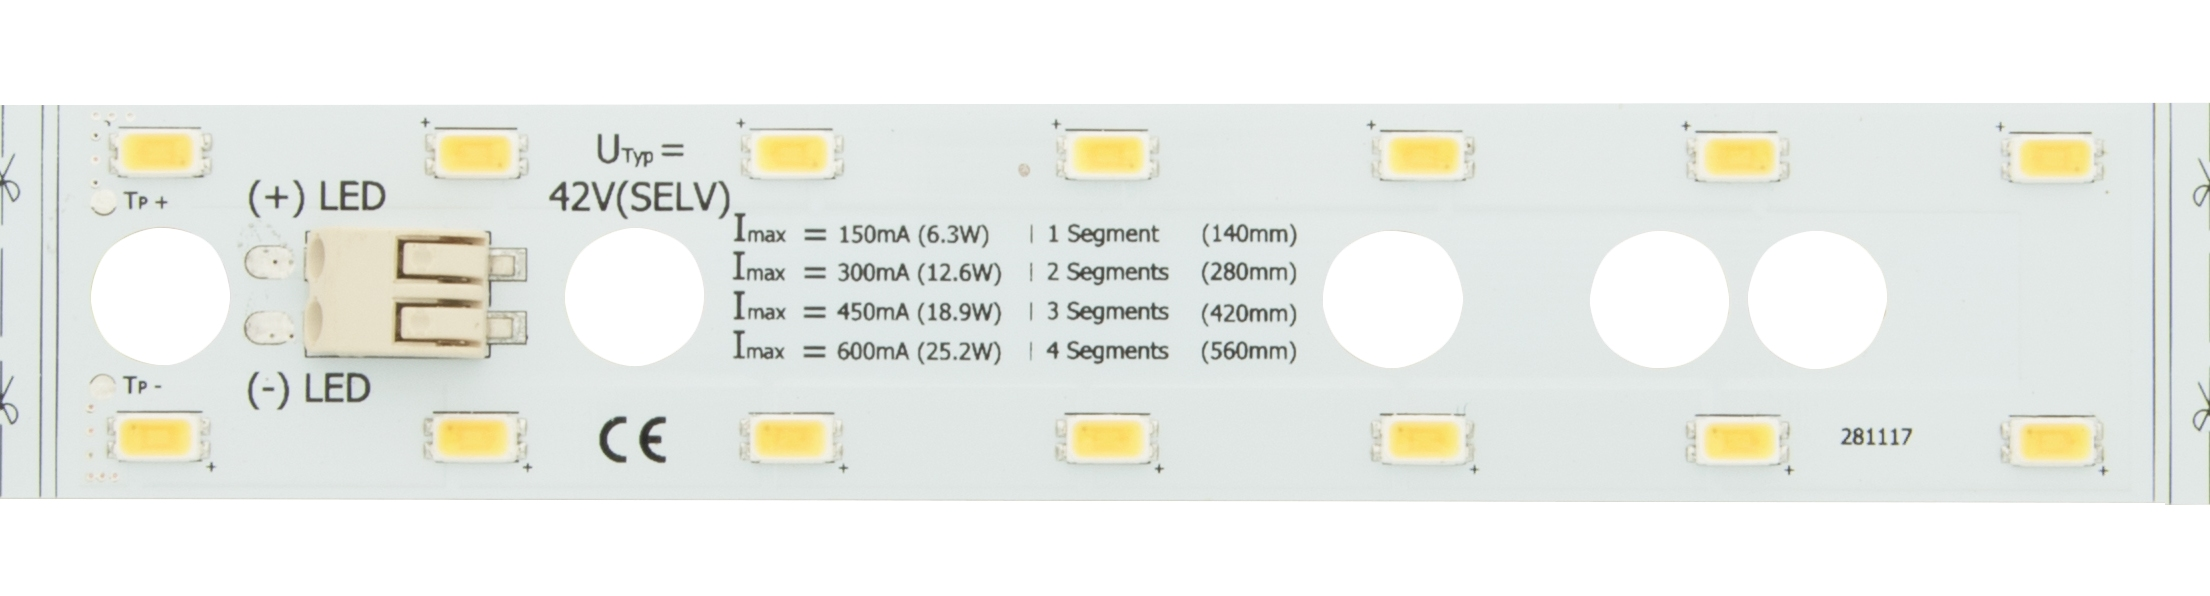 1 Stk LED Platinen Modul 25 NW (Neutral Weiss) - IP20, CRI/RA 90+ LIPM002940